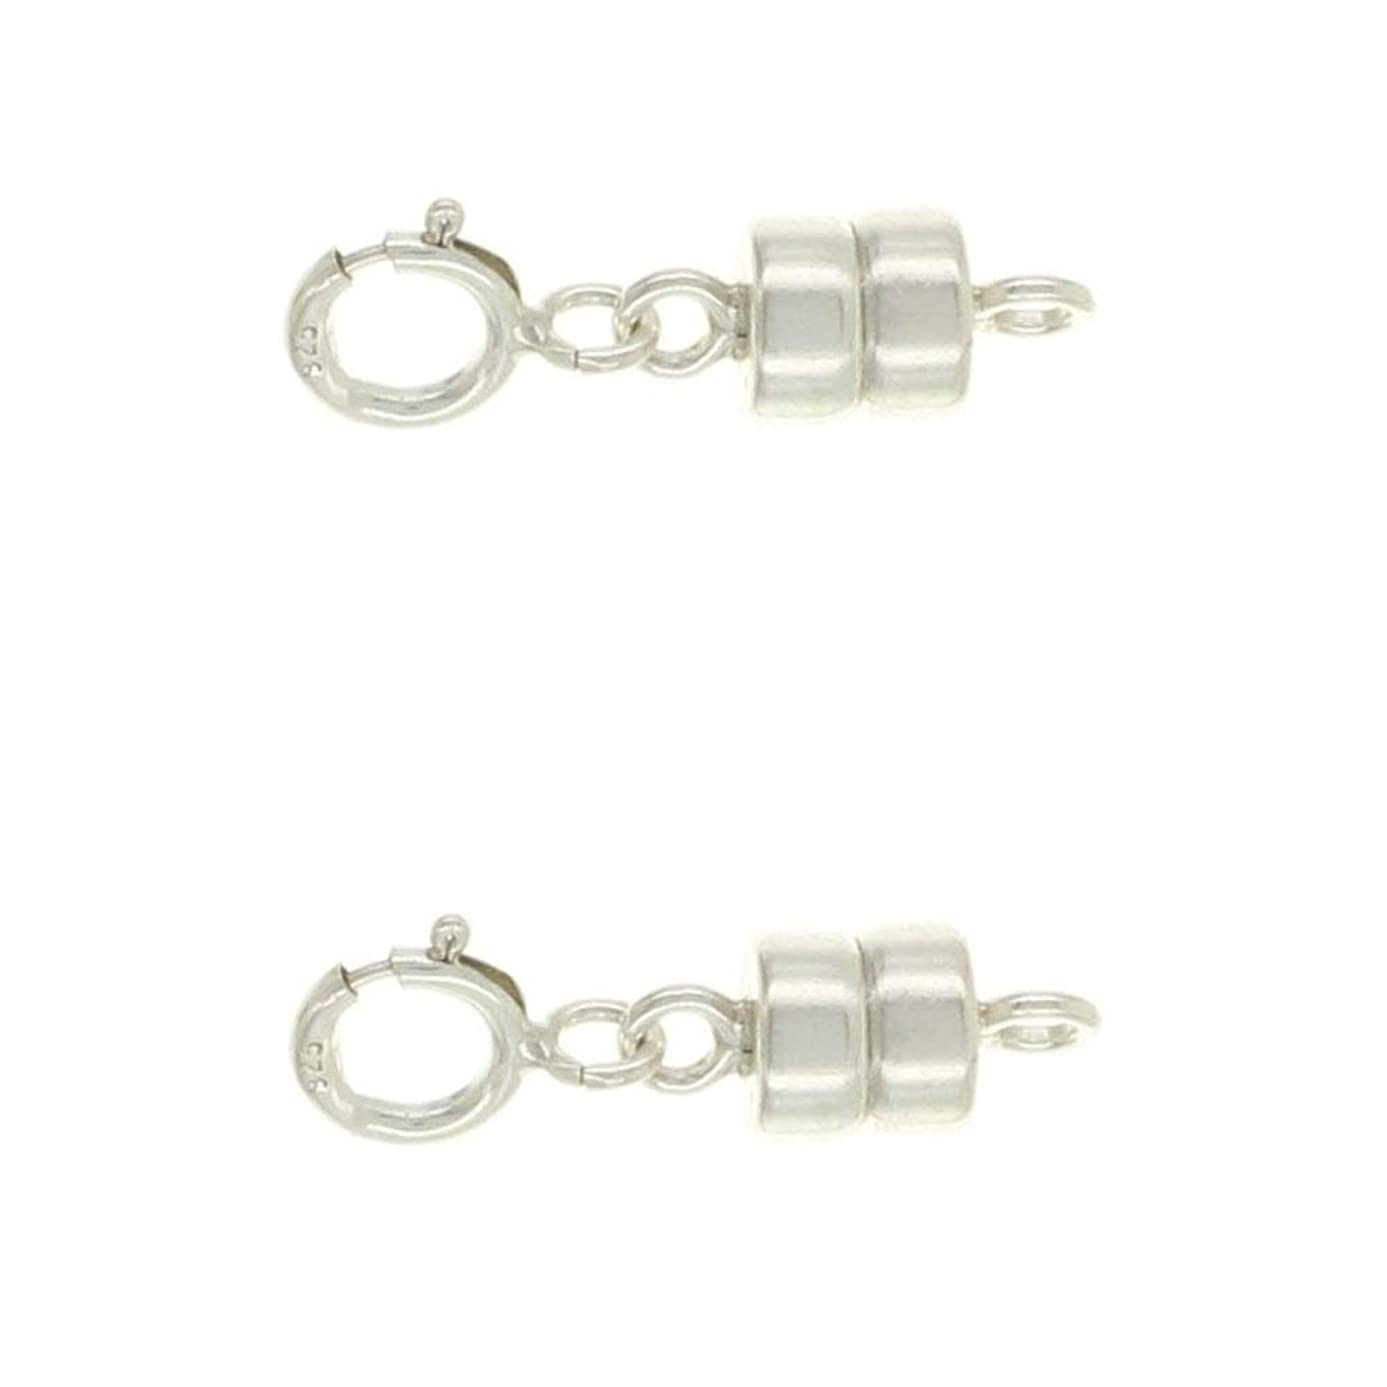 Sterling Silver 4.5 mm Magnetic Clasp Converter for Jewelry and Necklaces | Made in USA [2 Pack]